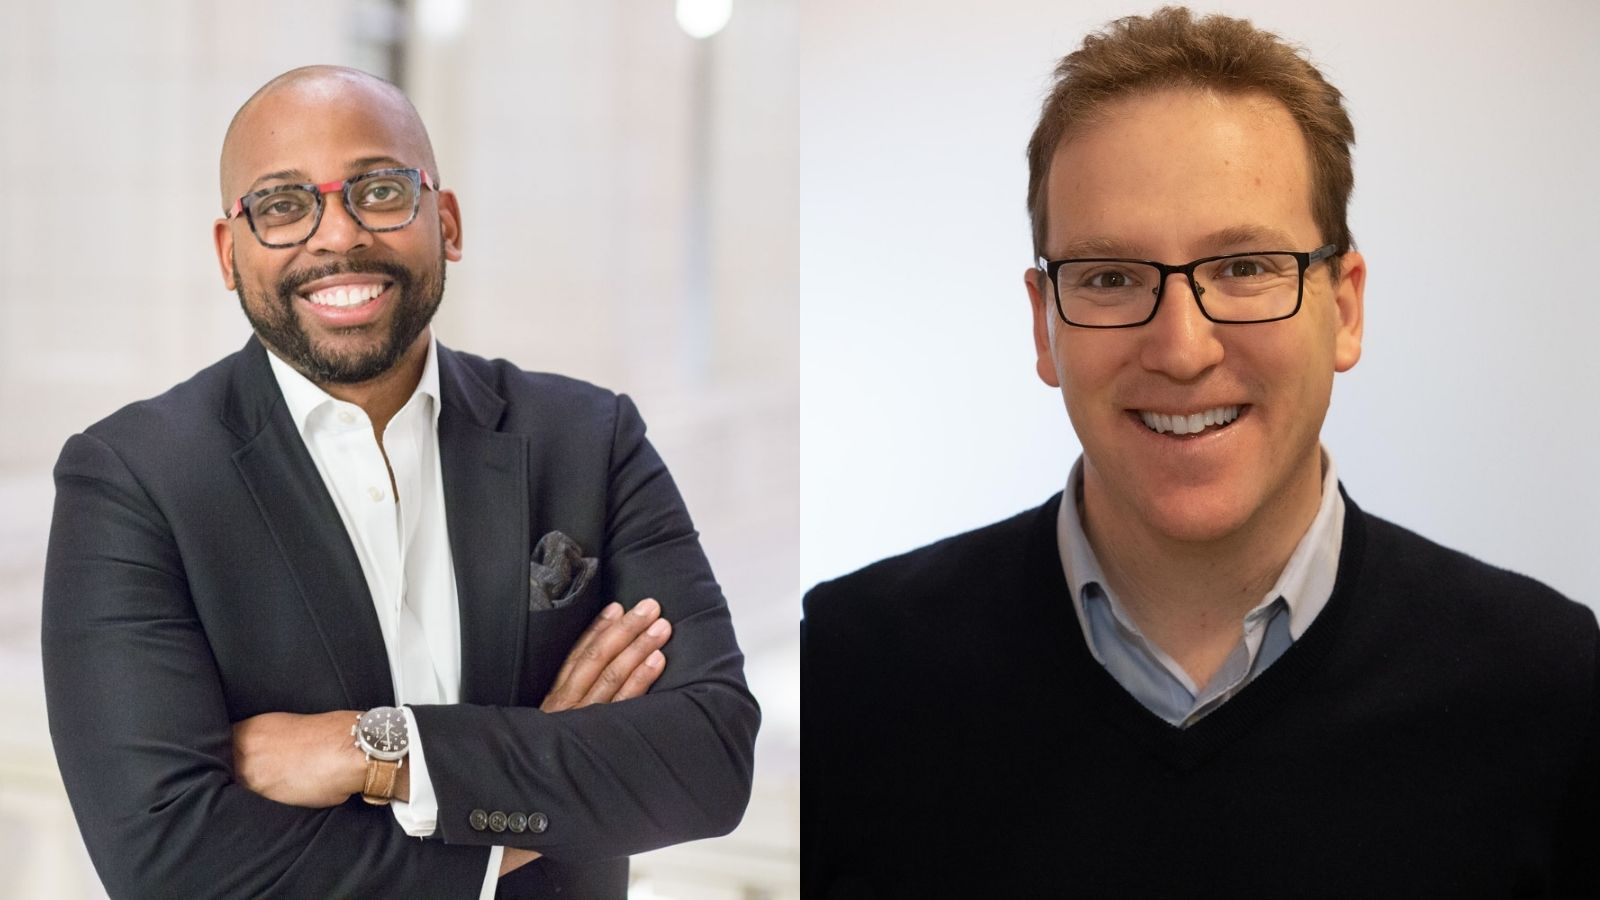 Ellis Carr, Capital Impact Partners and CDC Small Business Finance CEO, and Antony Bugg-Levine, Nonprofit Finance Fund CEO